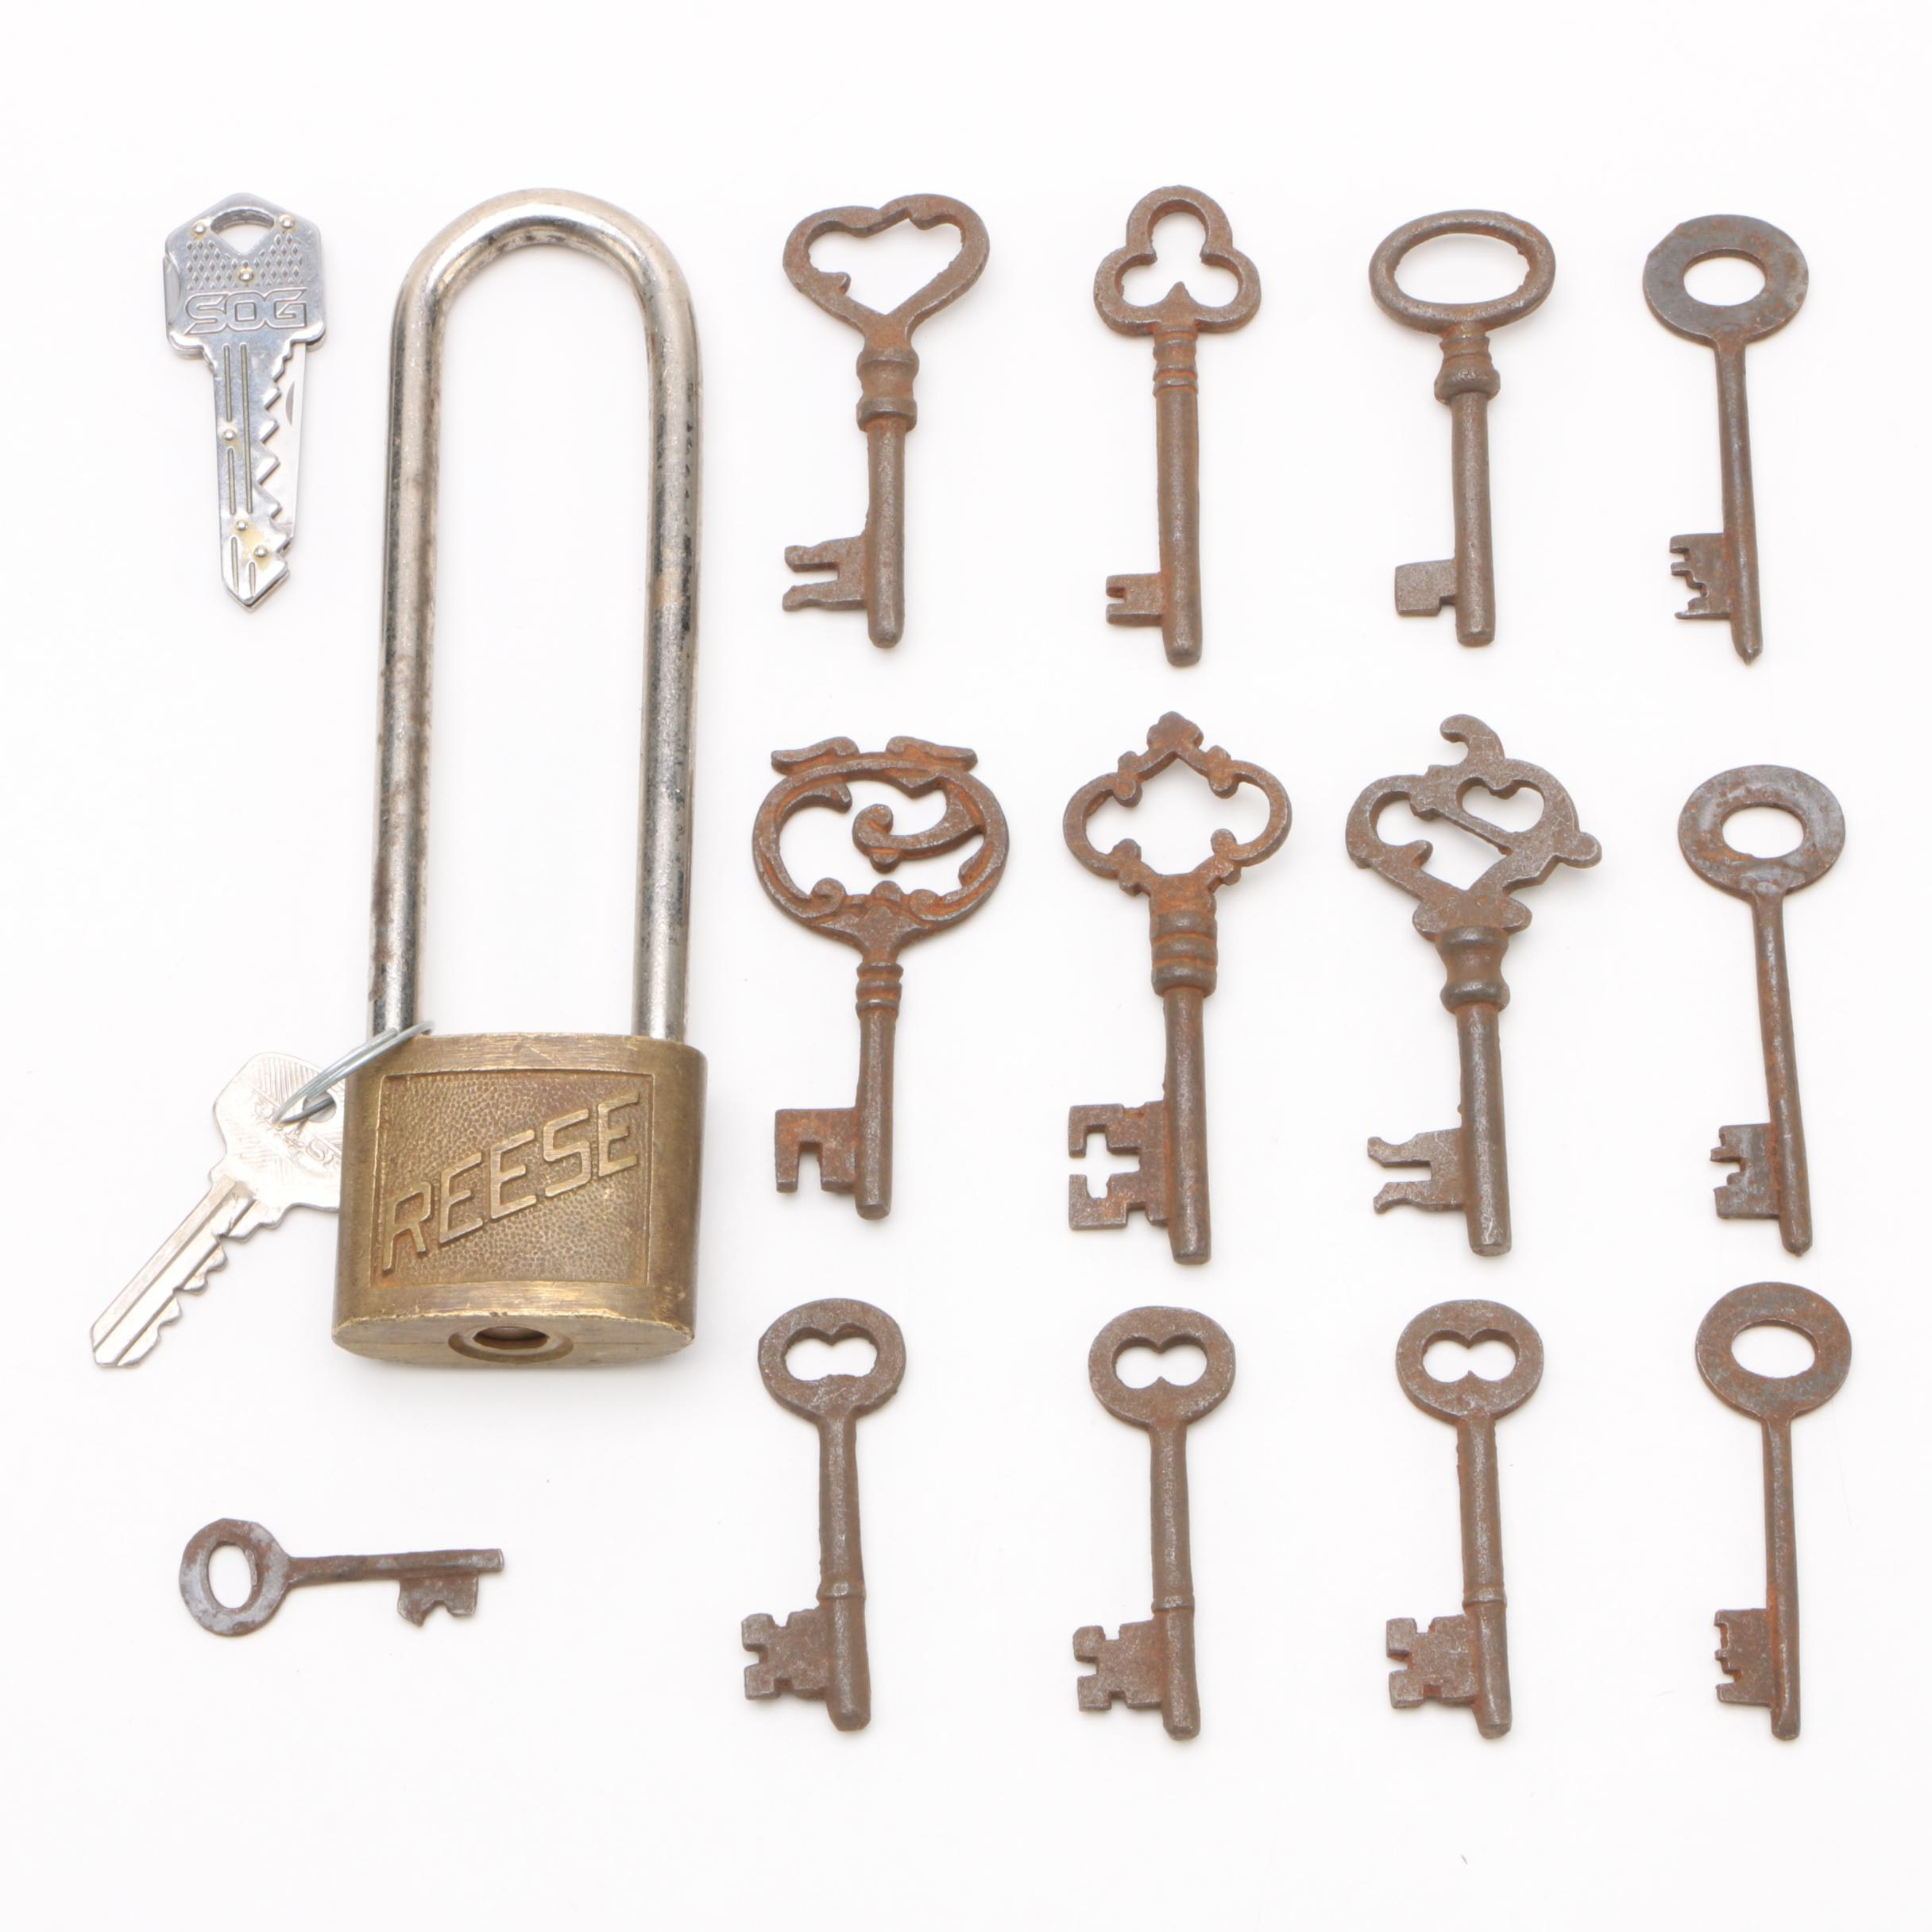 Skeleton Key Assortment with Reese Padlock Including Voltas, Early 20th Century